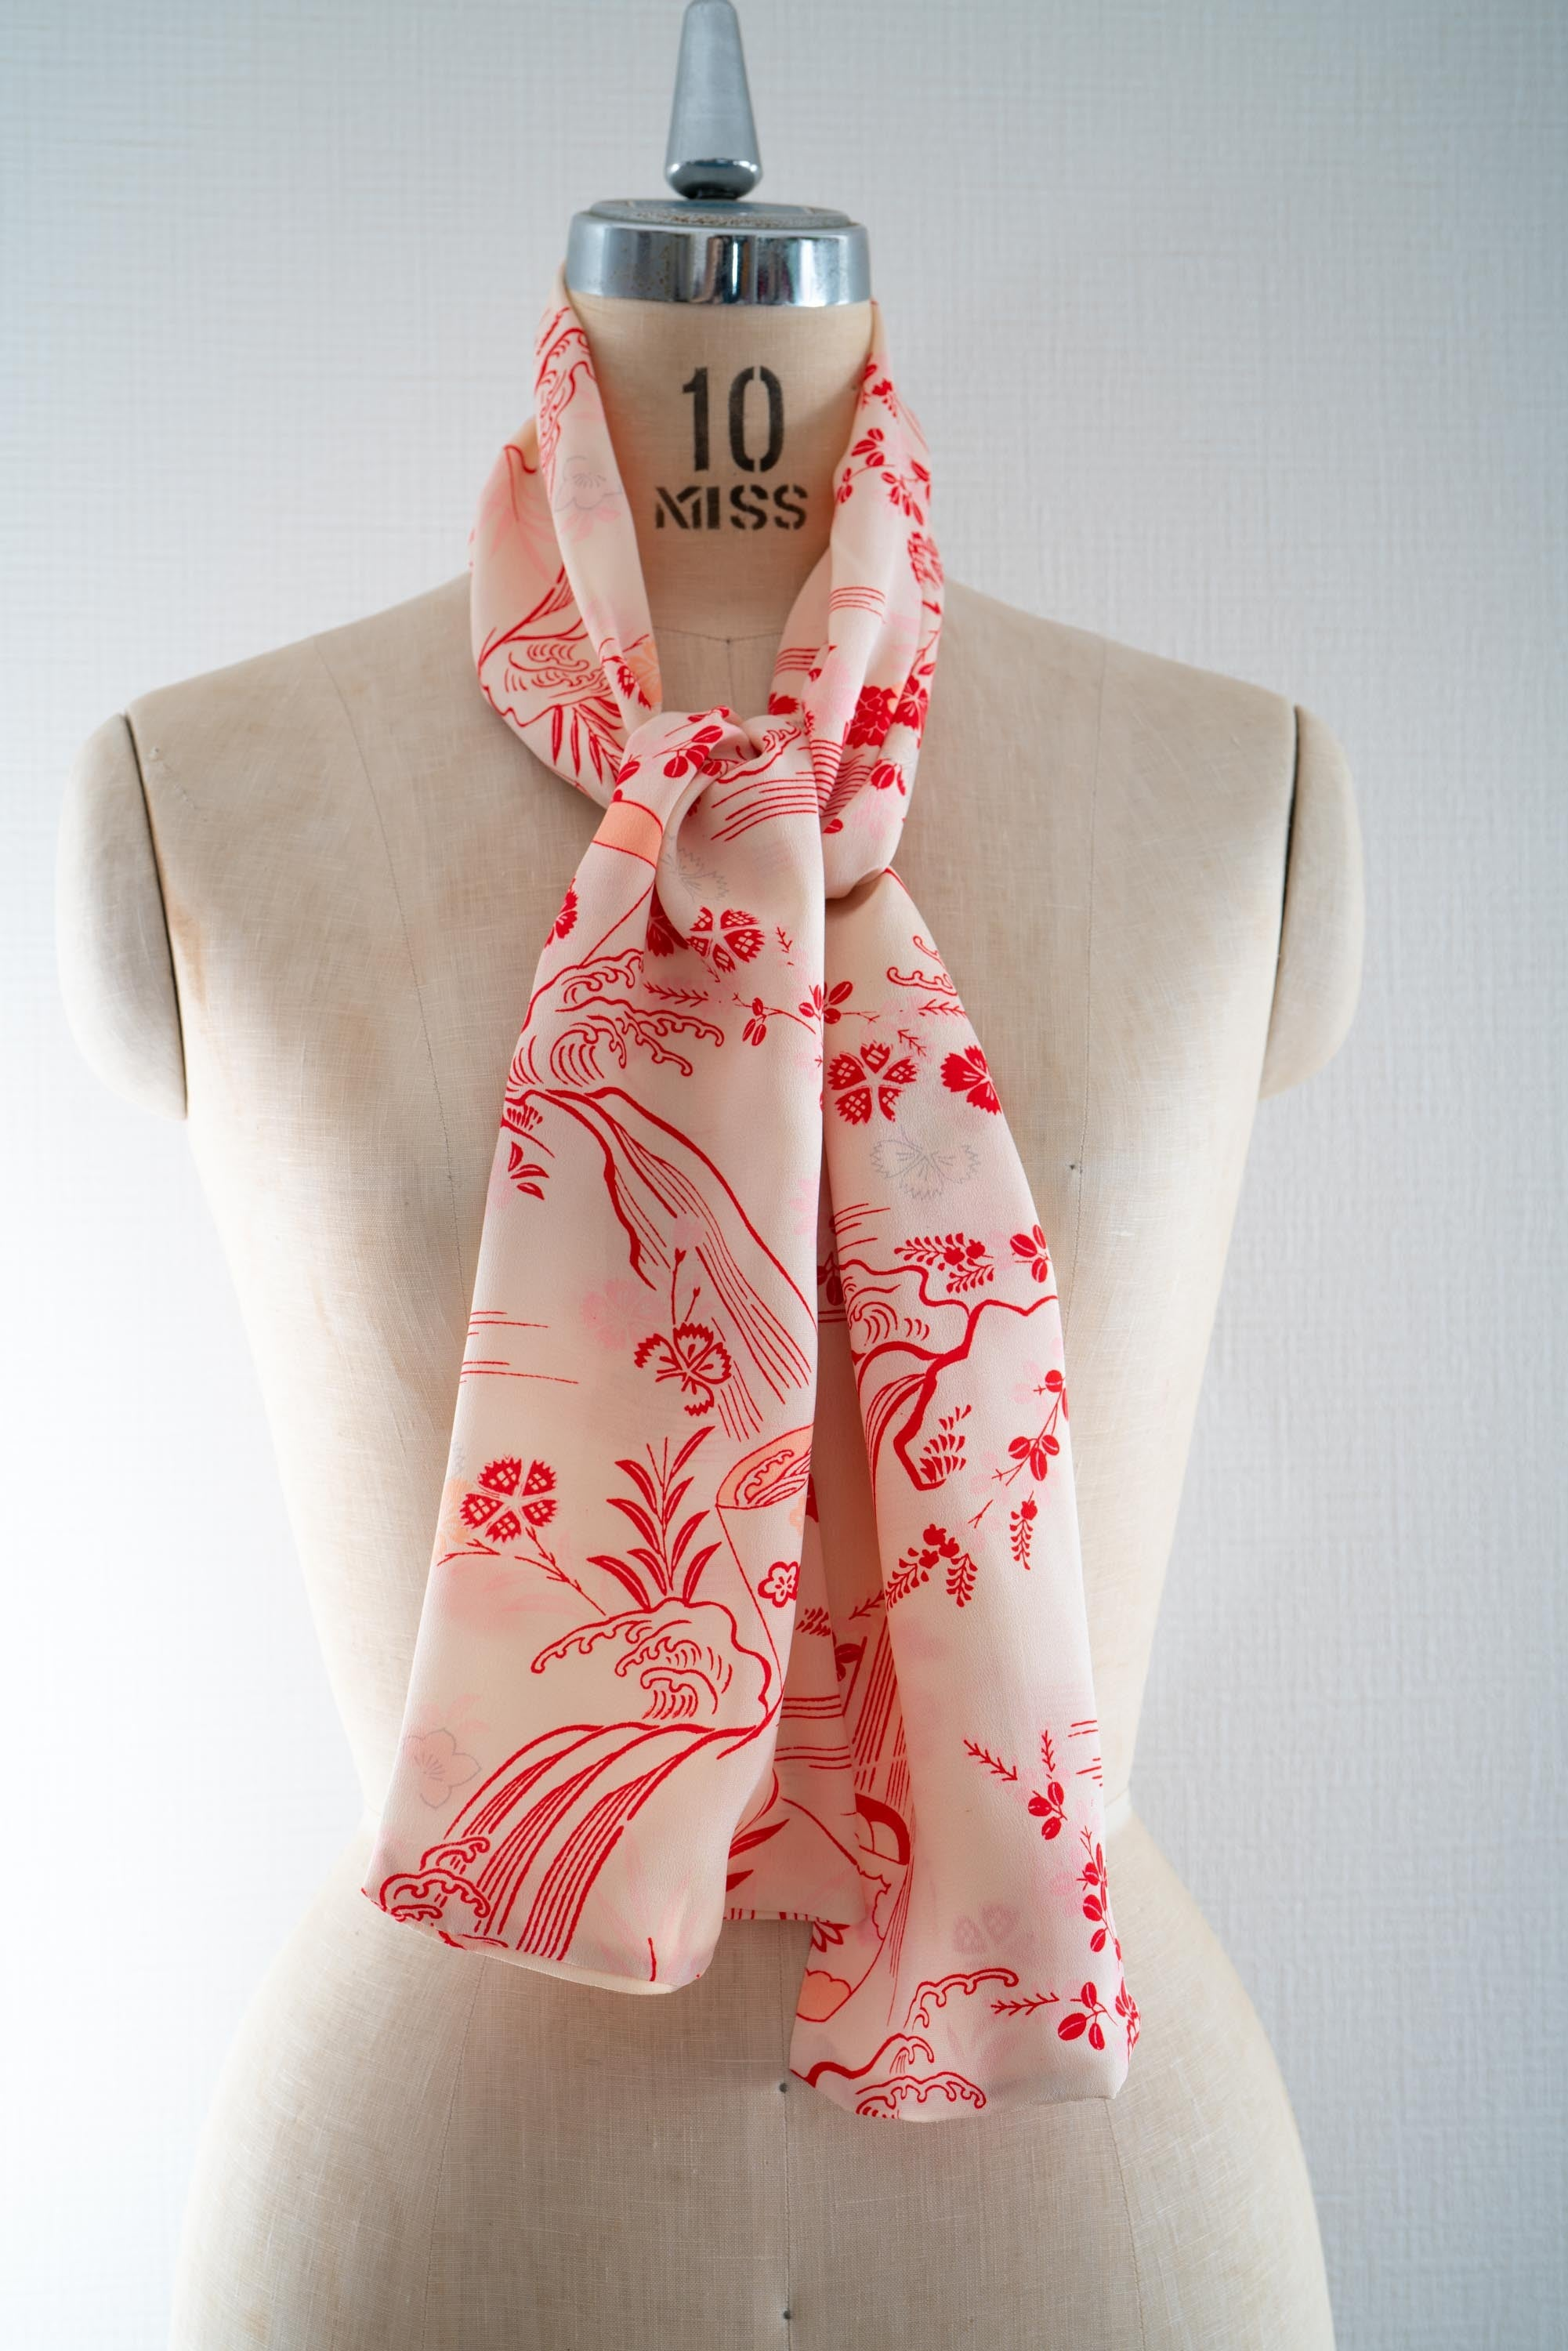 Outdoors Waves Flowers Super Lightweight Upcycled Kimono Rectangle Scarf - Handmade in Kyoto Japan Red Outlines on White Silk